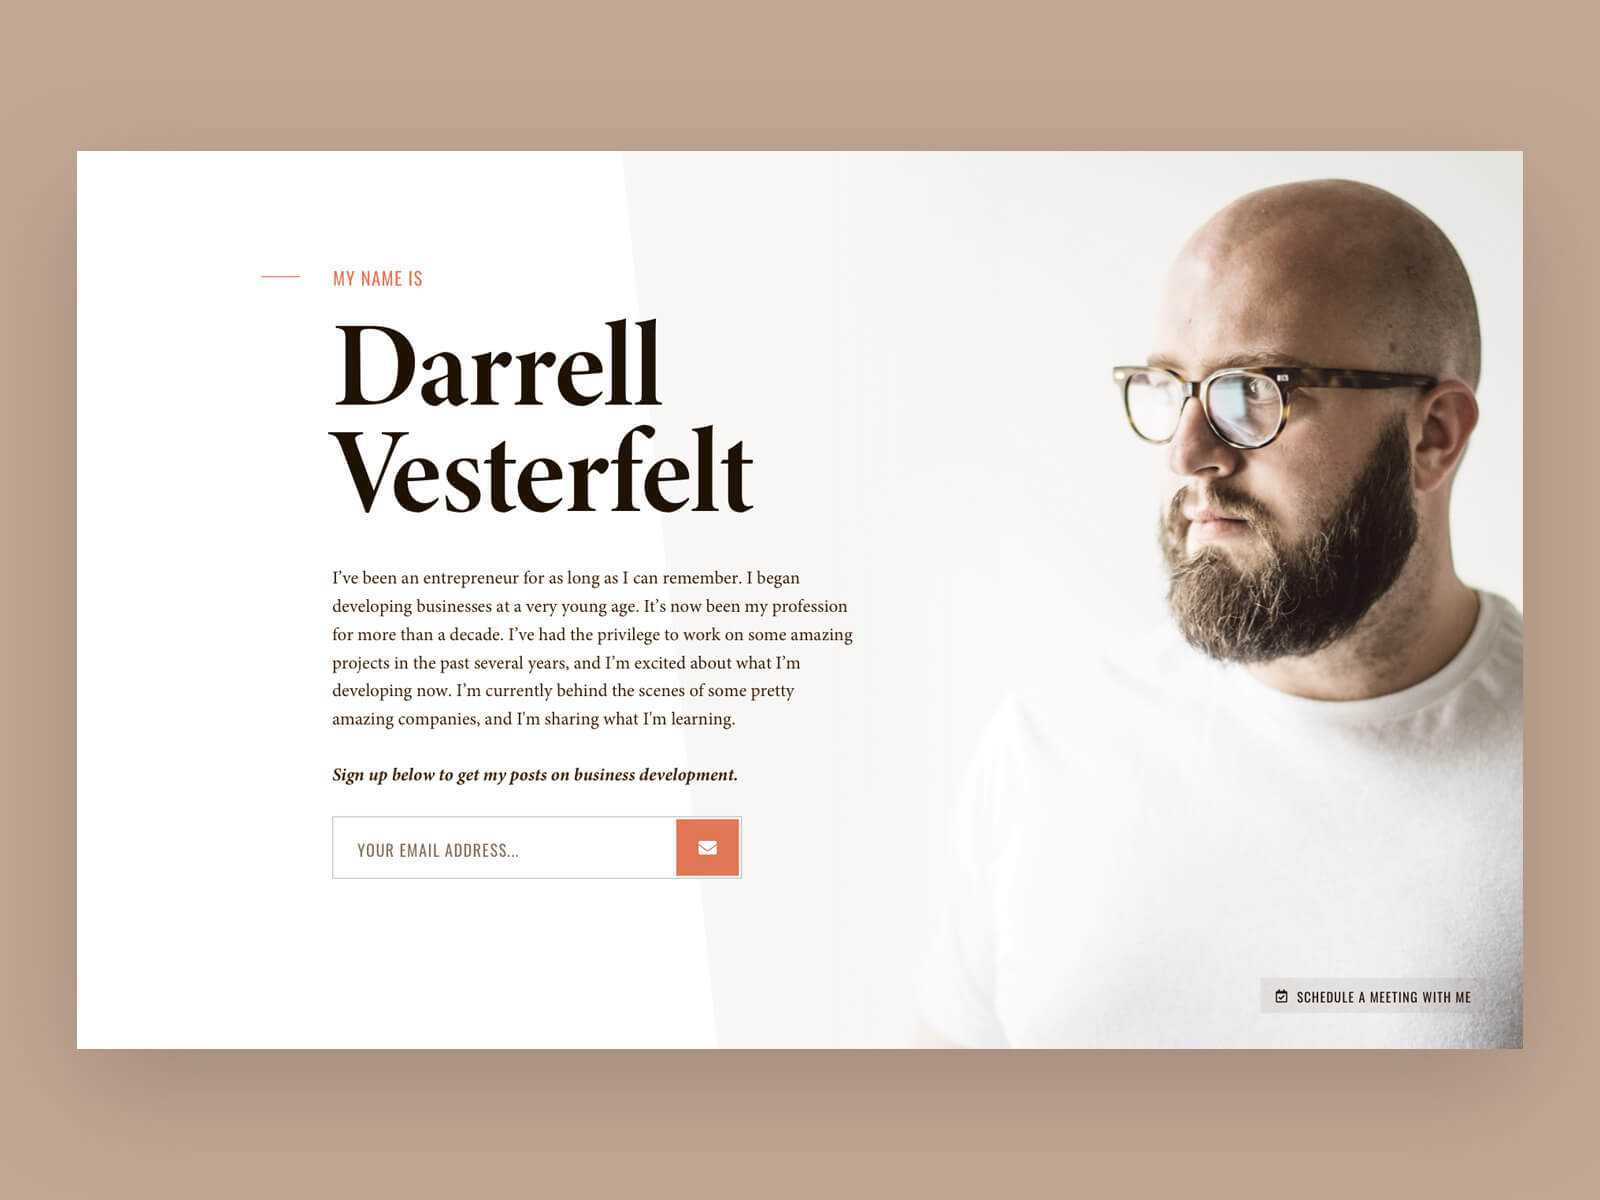 Darrell Vesterfelt's Personal Landing Page